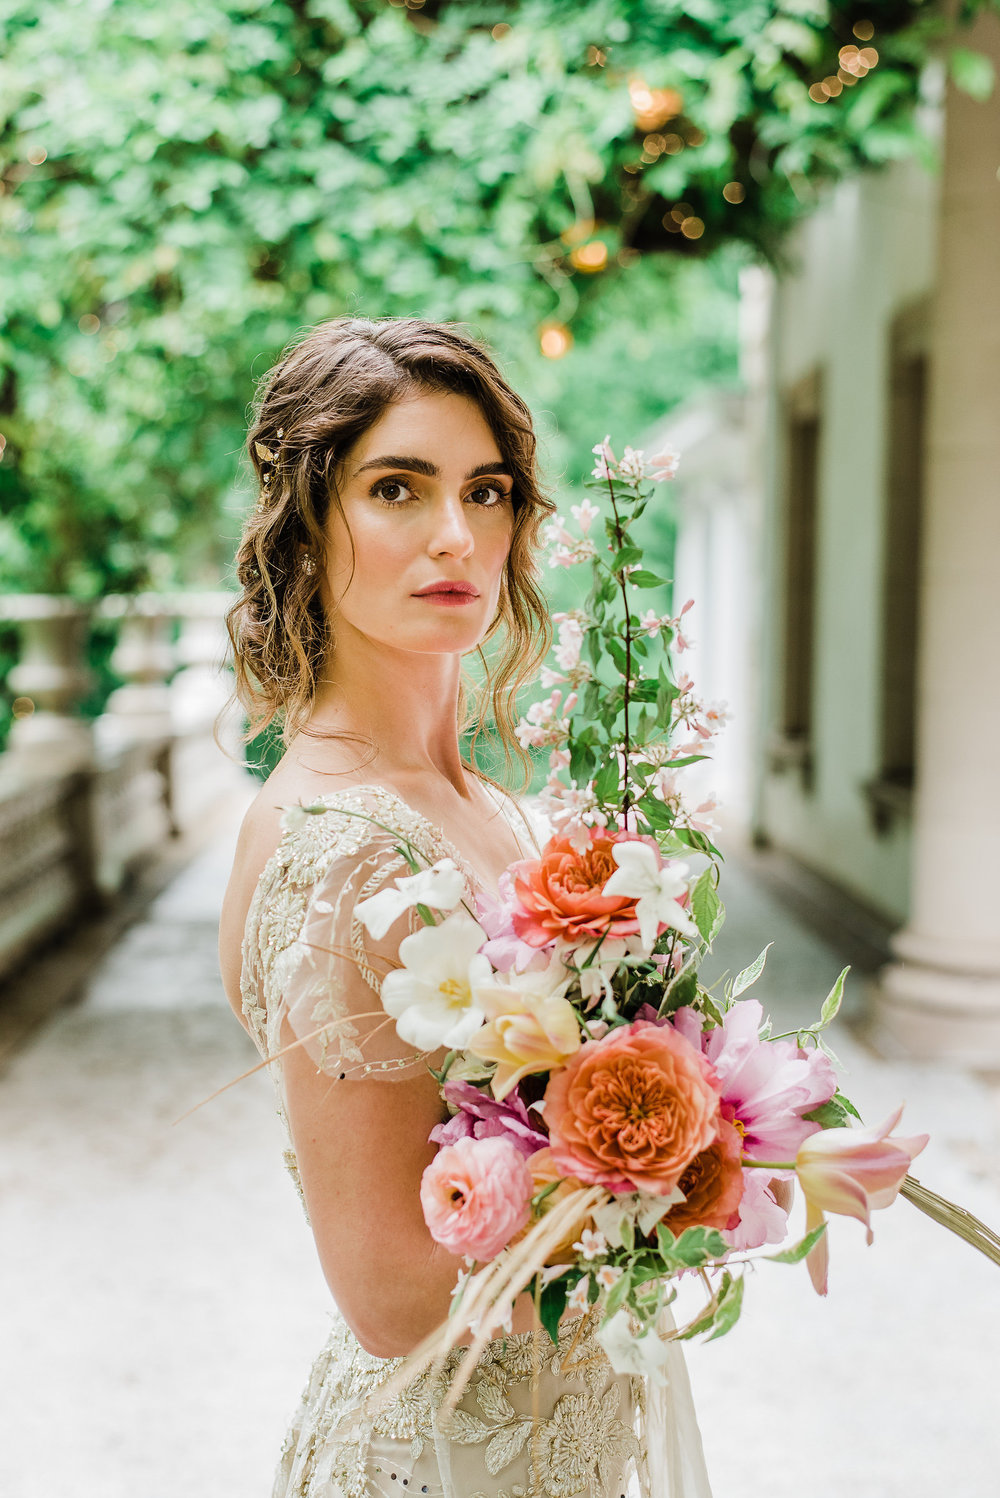 photography:   Megan Harris Photography     Florals:  Steelcut Flower Co.  -  @steelcutflowerco